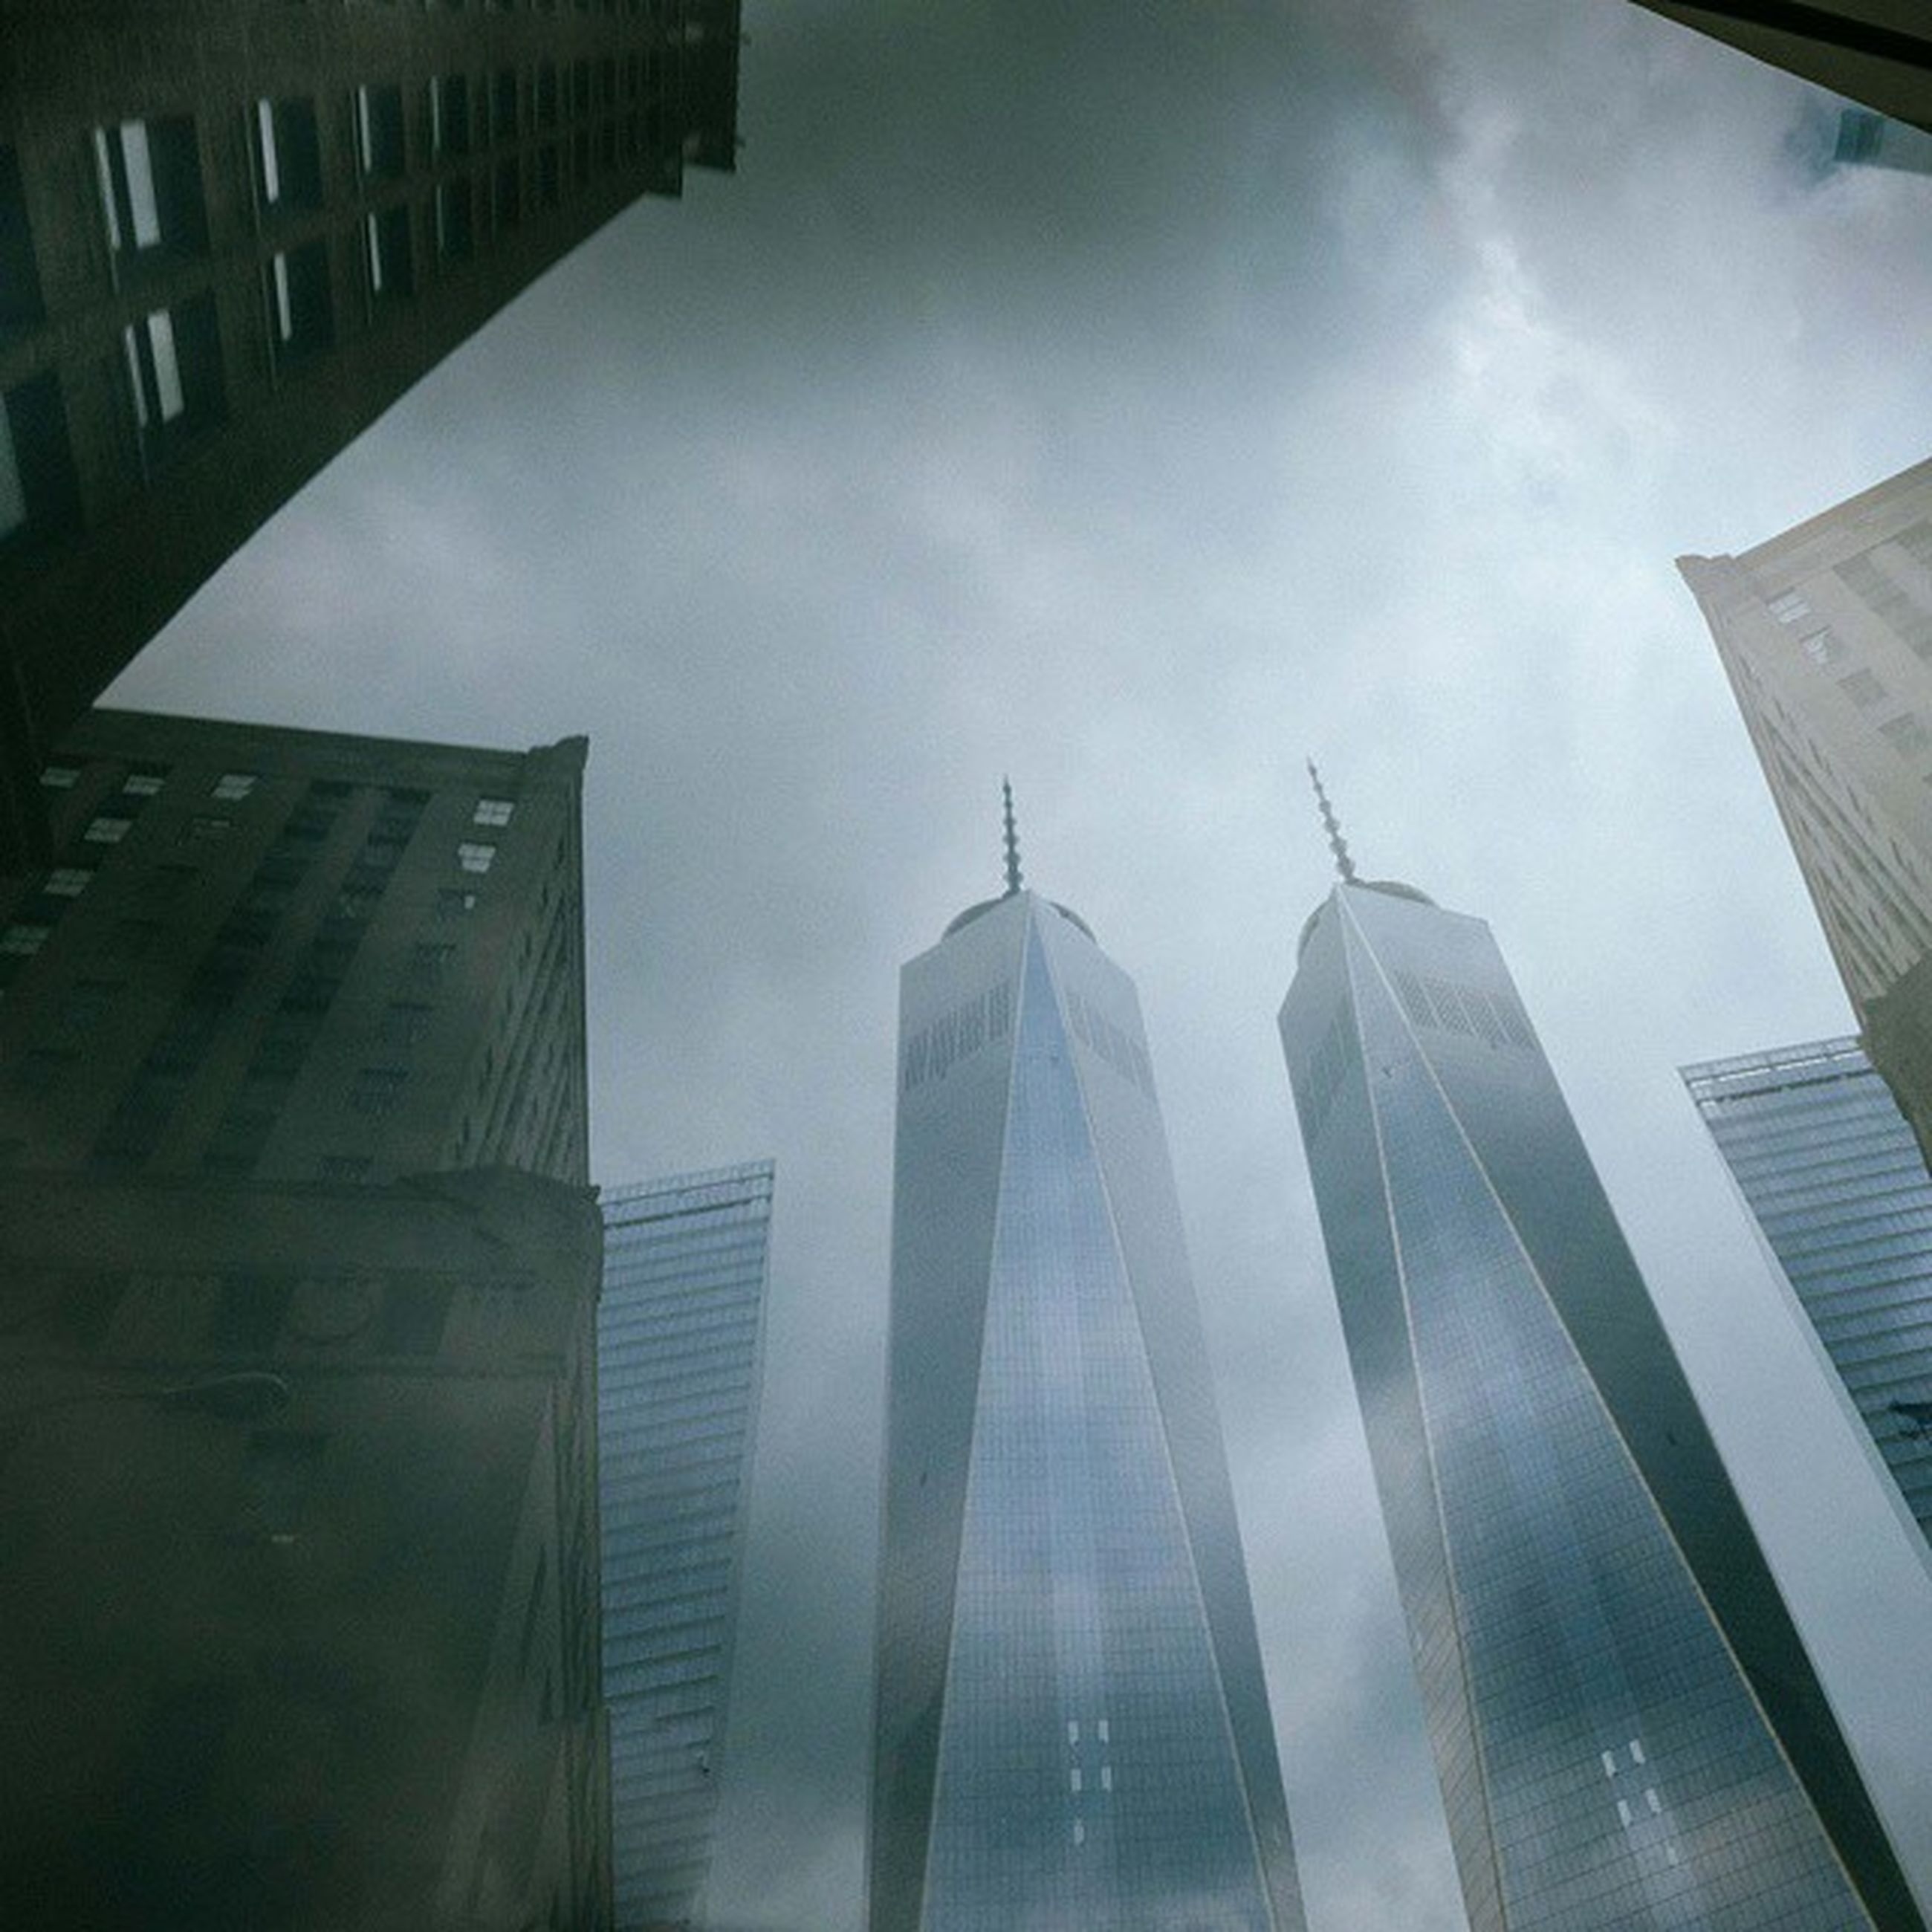 architecture, building exterior, built structure, skyscraper, city, modern, tall - high, office building, tower, sky, low angle view, capital cities, cloud - sky, glass - material, financial district, reflection, travel destinations, building, tall, city life